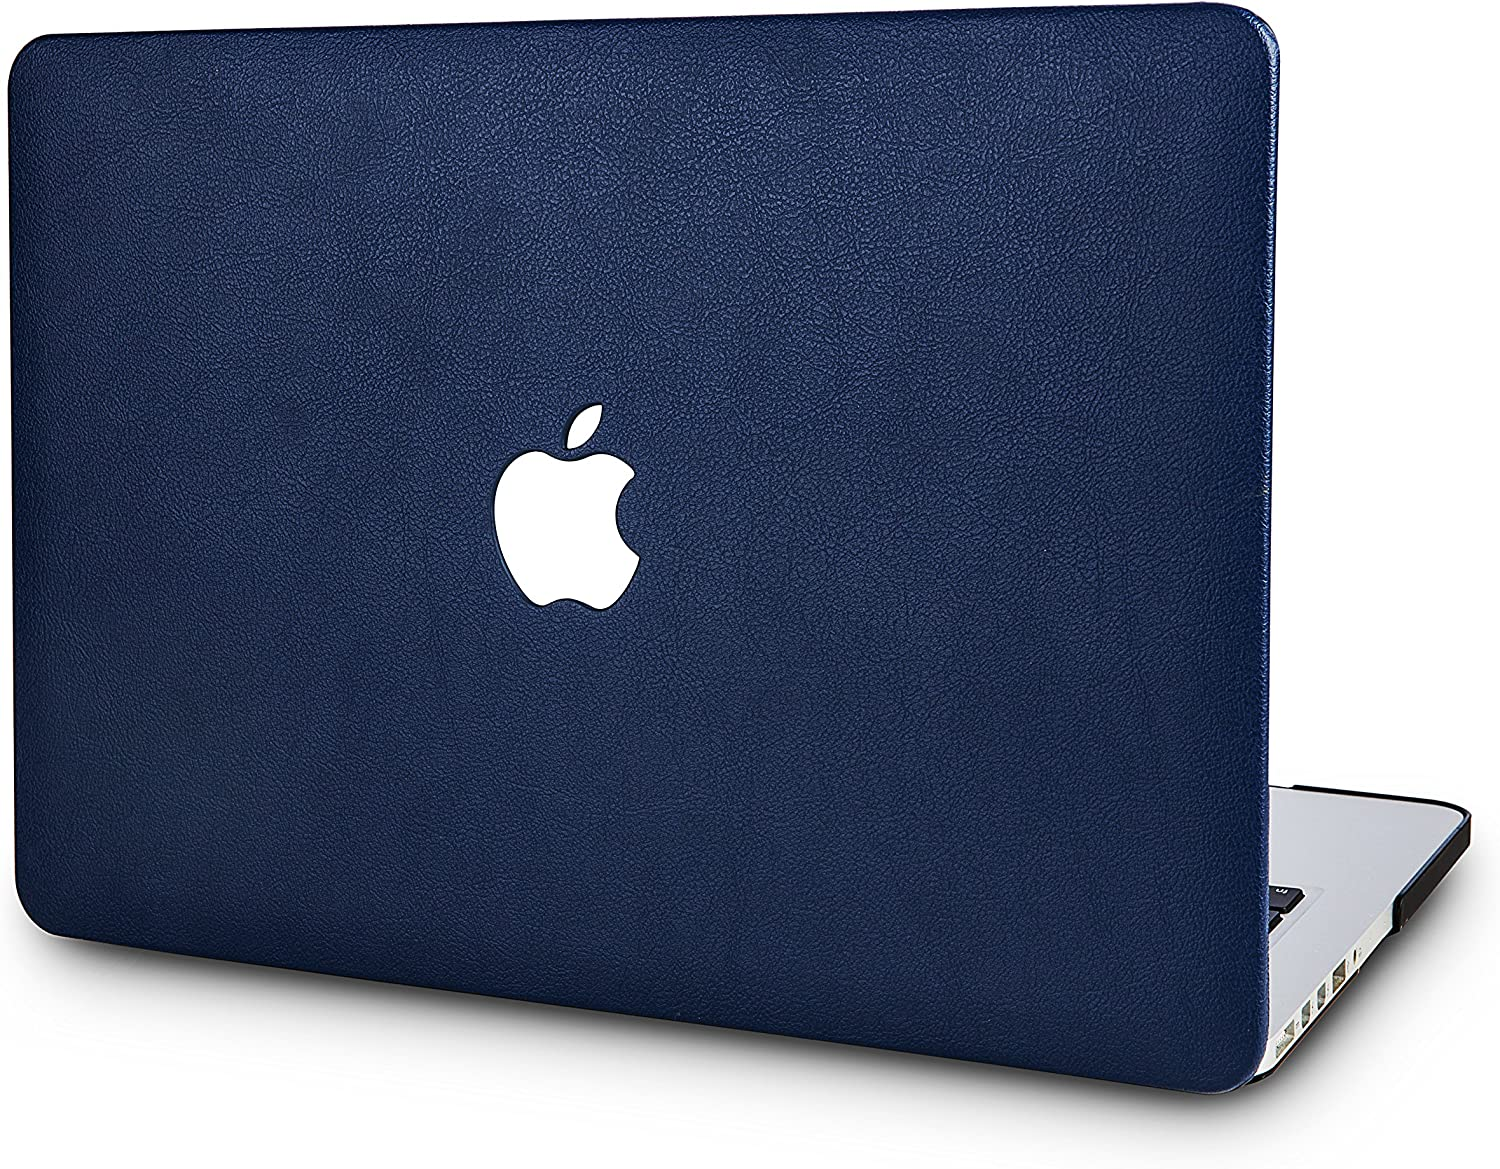 "KECC Laptop Case for MacBook Pro 16"" (2020/2019) Italian Leather Hard Shell Cover A2141 (Navy Blue Leather)"